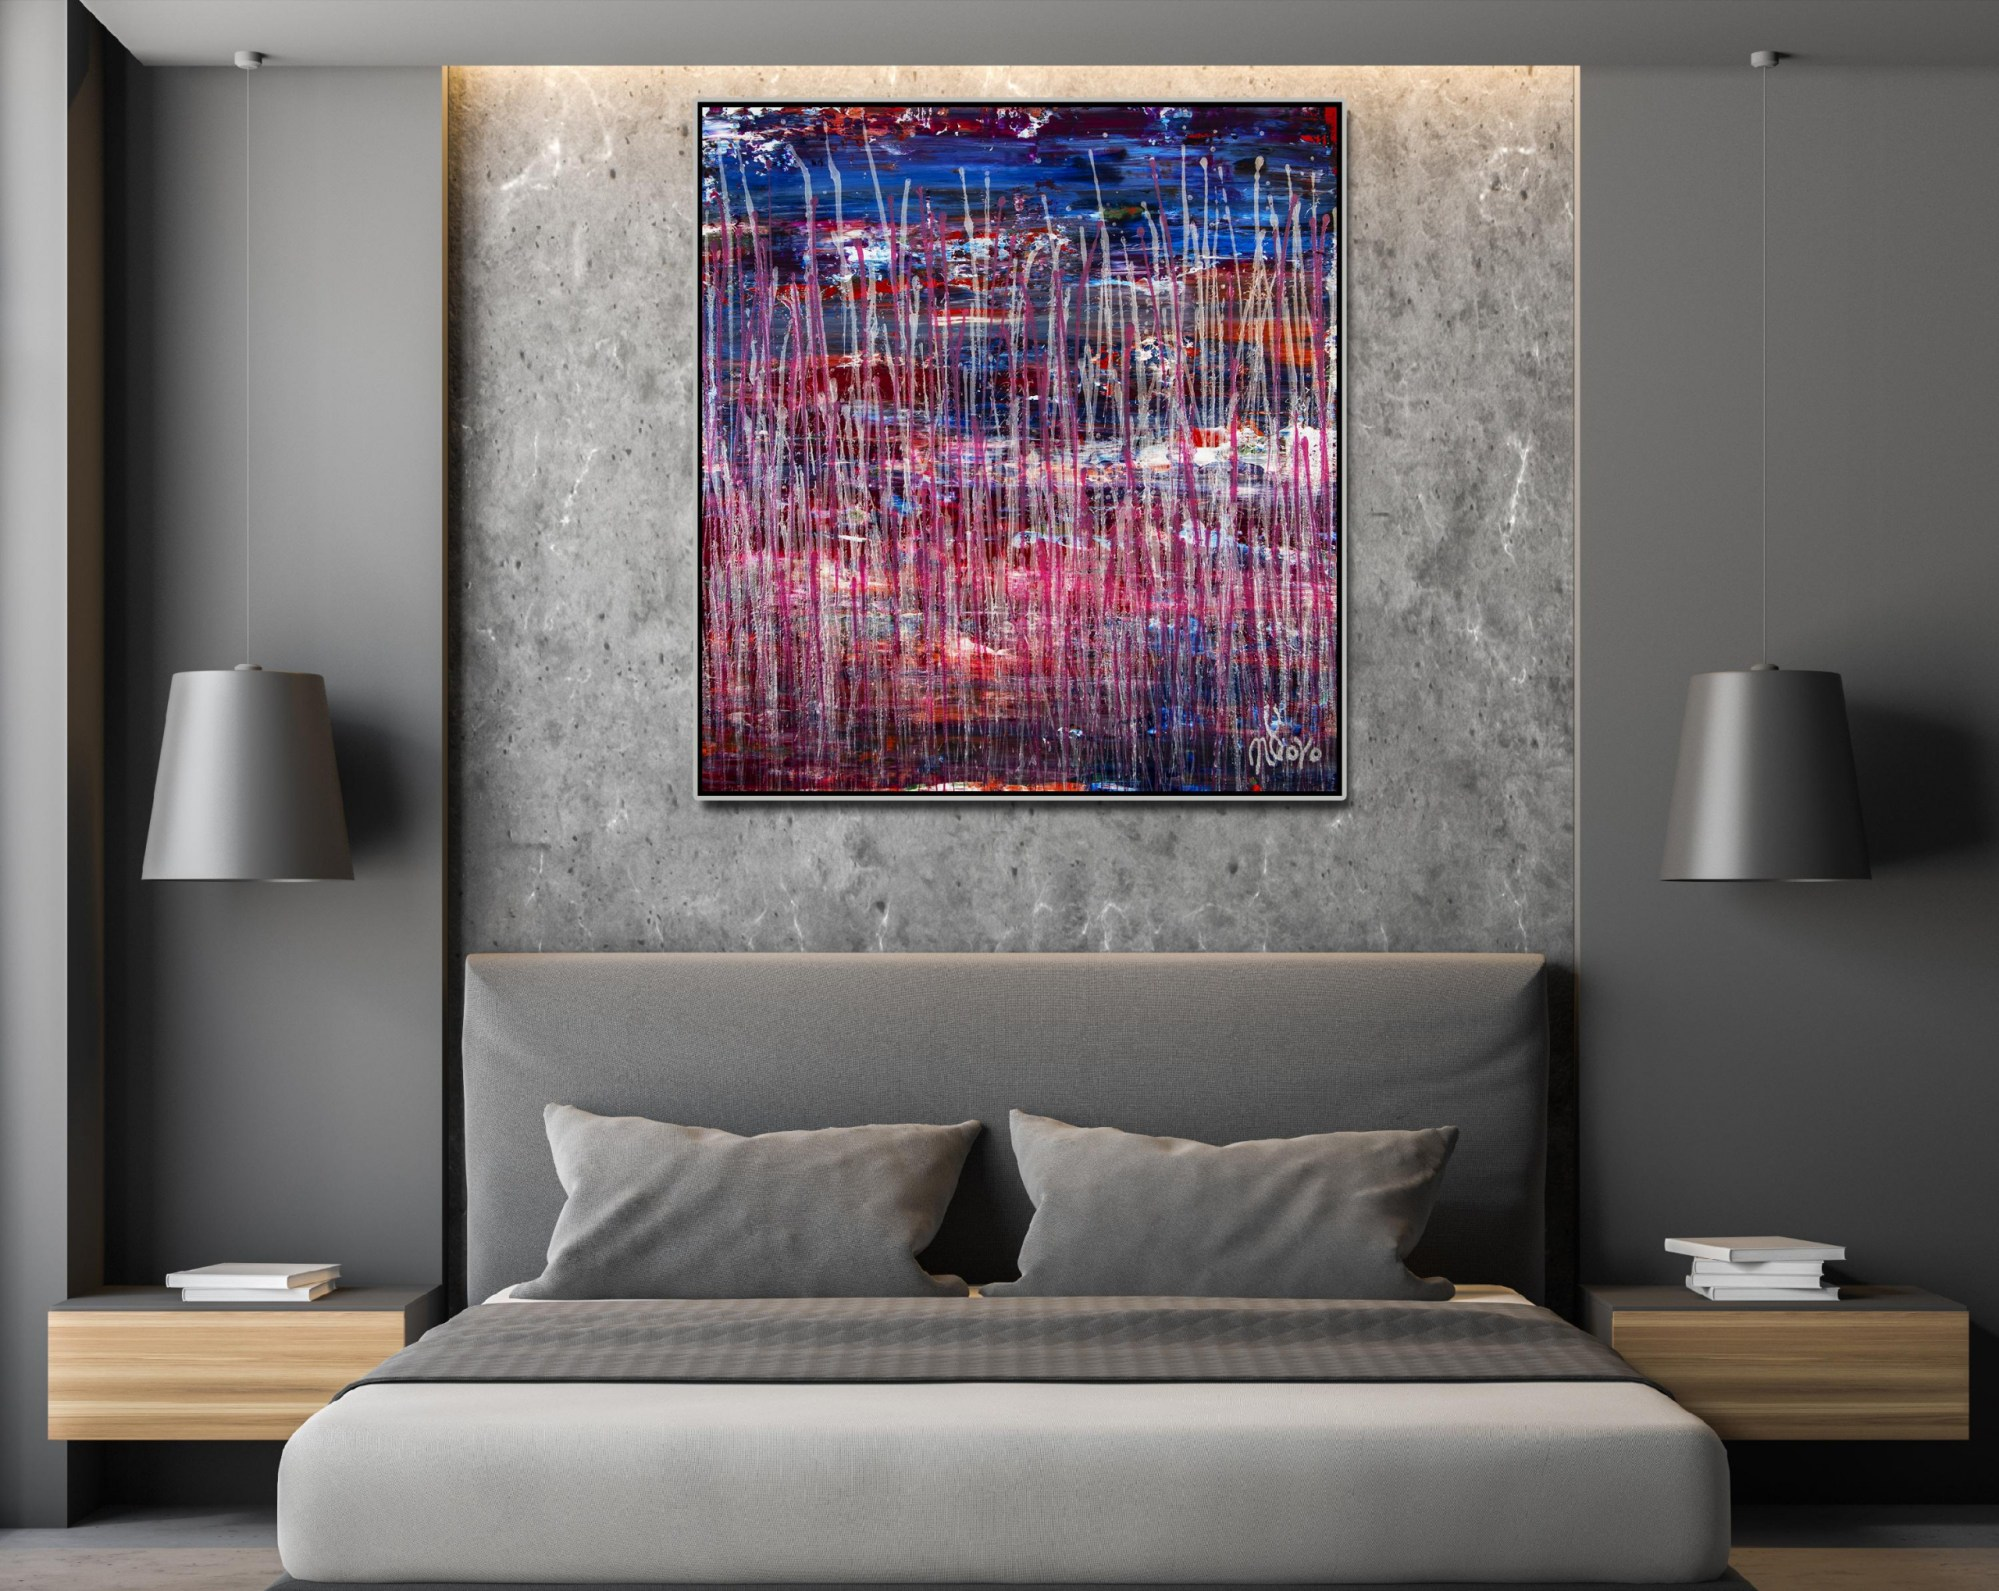 SOLD - Torrential Night Storm (A closer look) 2 (2021) by Nestor Toro